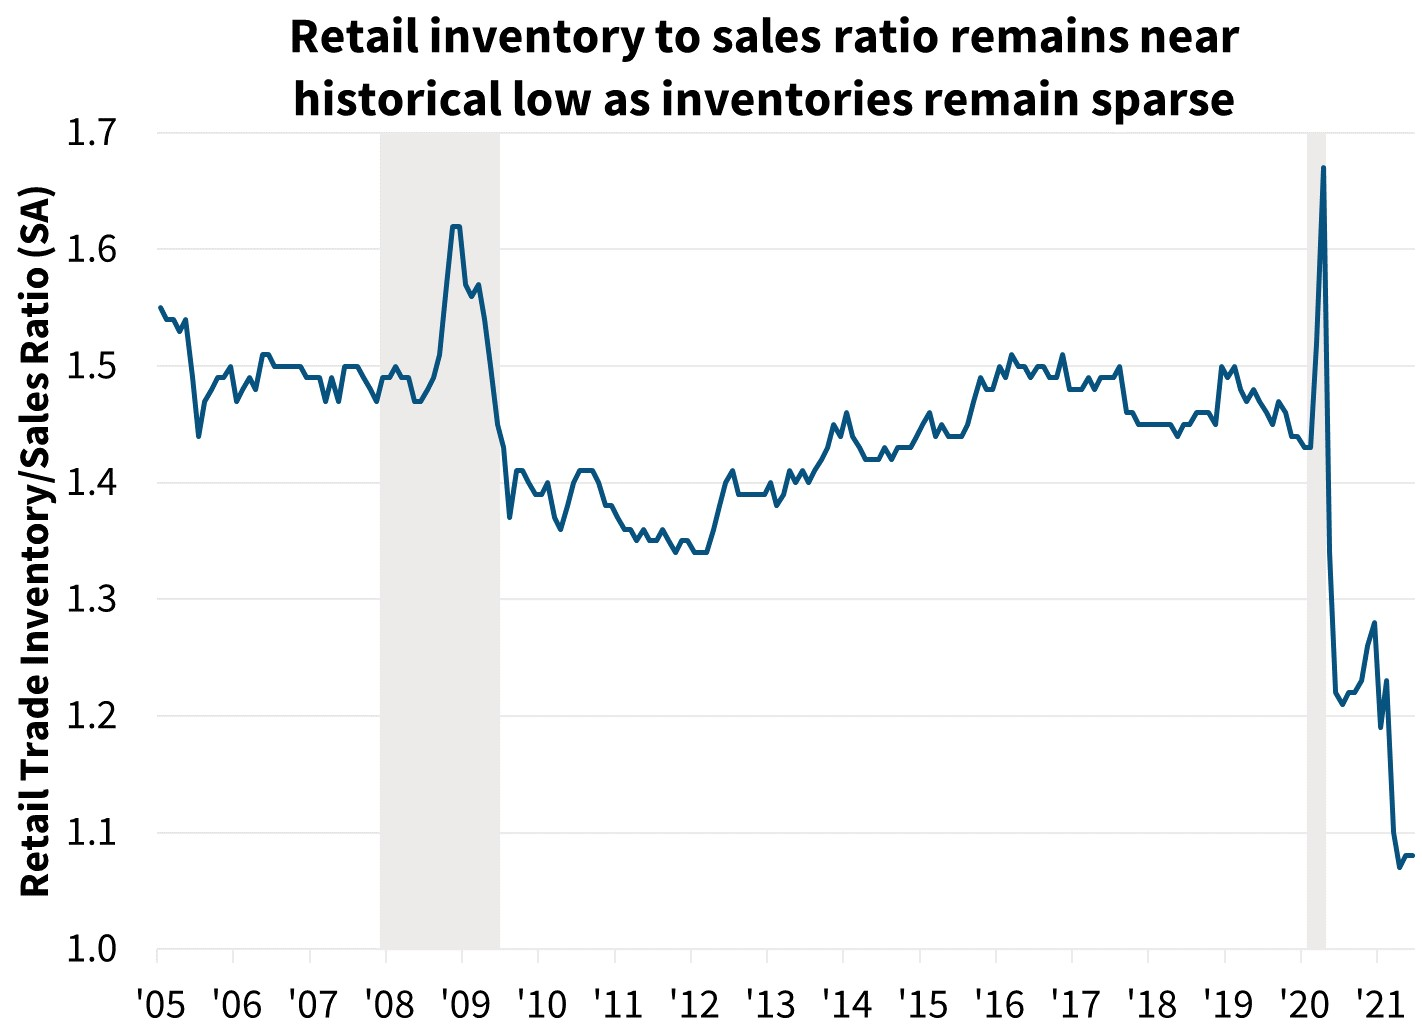 Retail inventory to sales ratio remains near historical low as inventories remain sparse